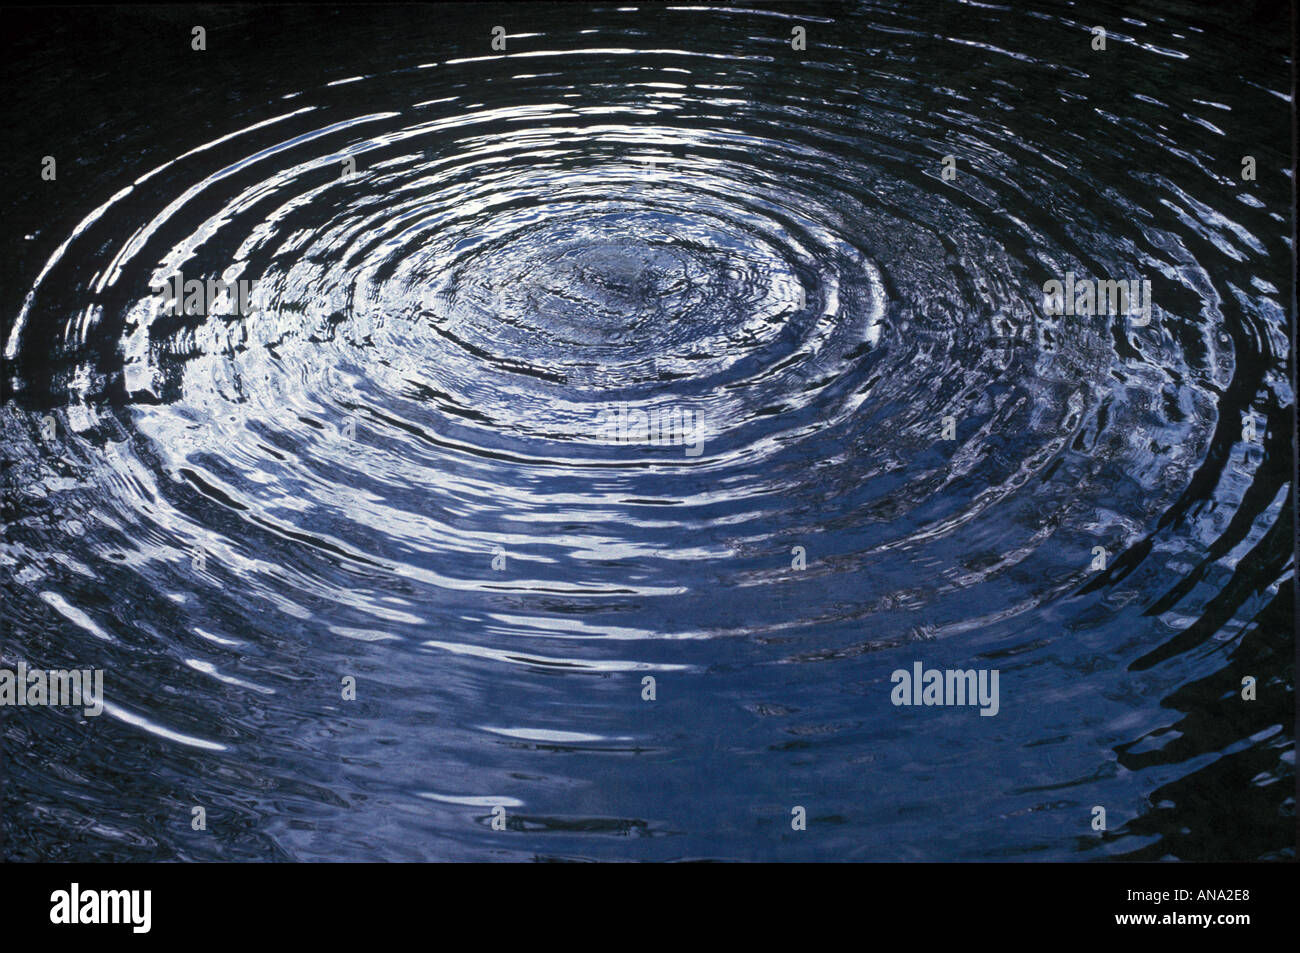 circular ripples in a pond - Stock Image